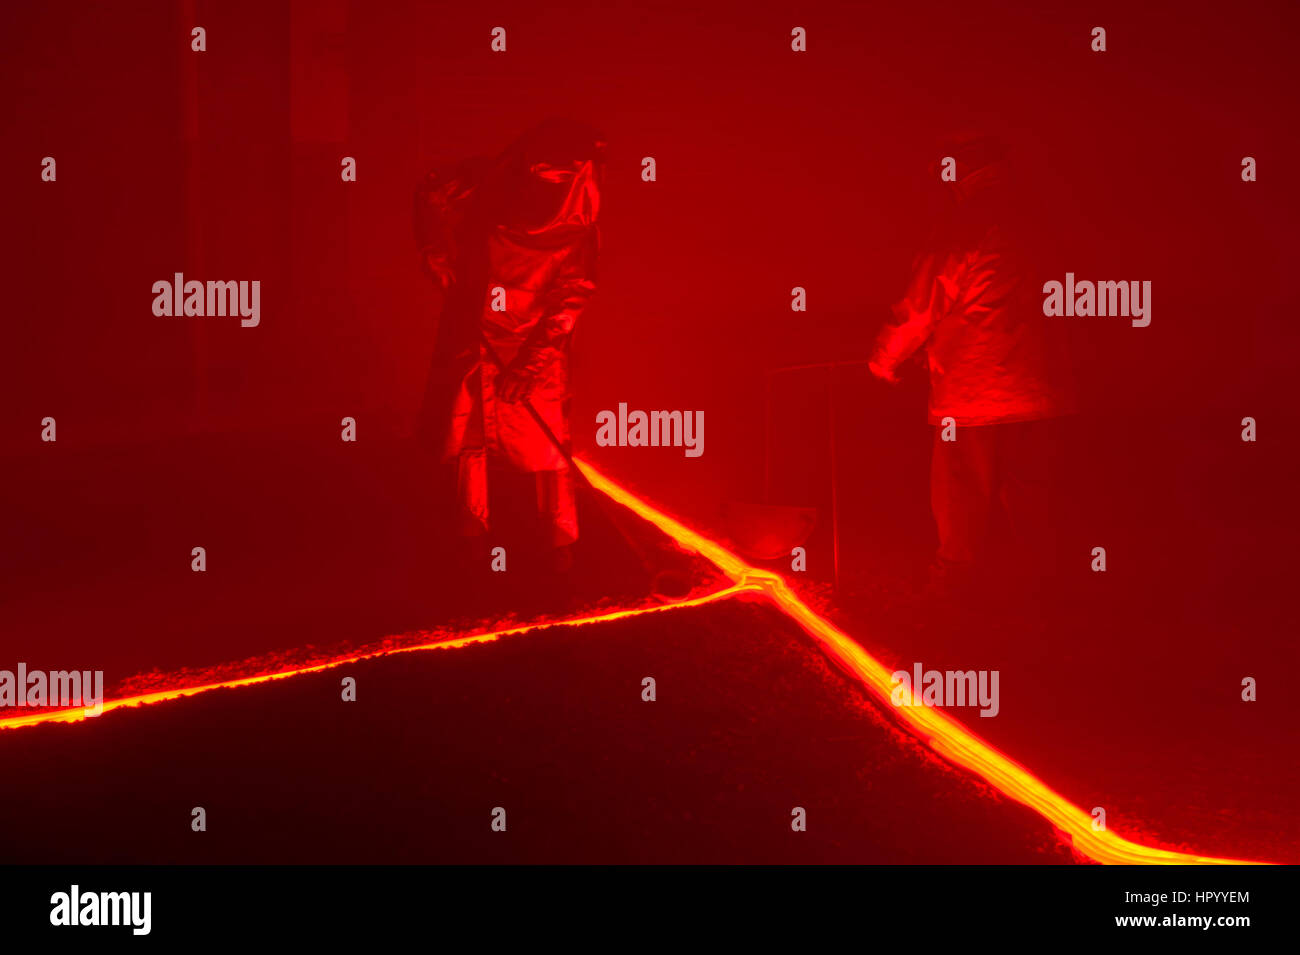 Pouring hot, glowing, molten iron across an earthen floor by two steelworkers, two reenactors recreating a metallurgical - Stock Image